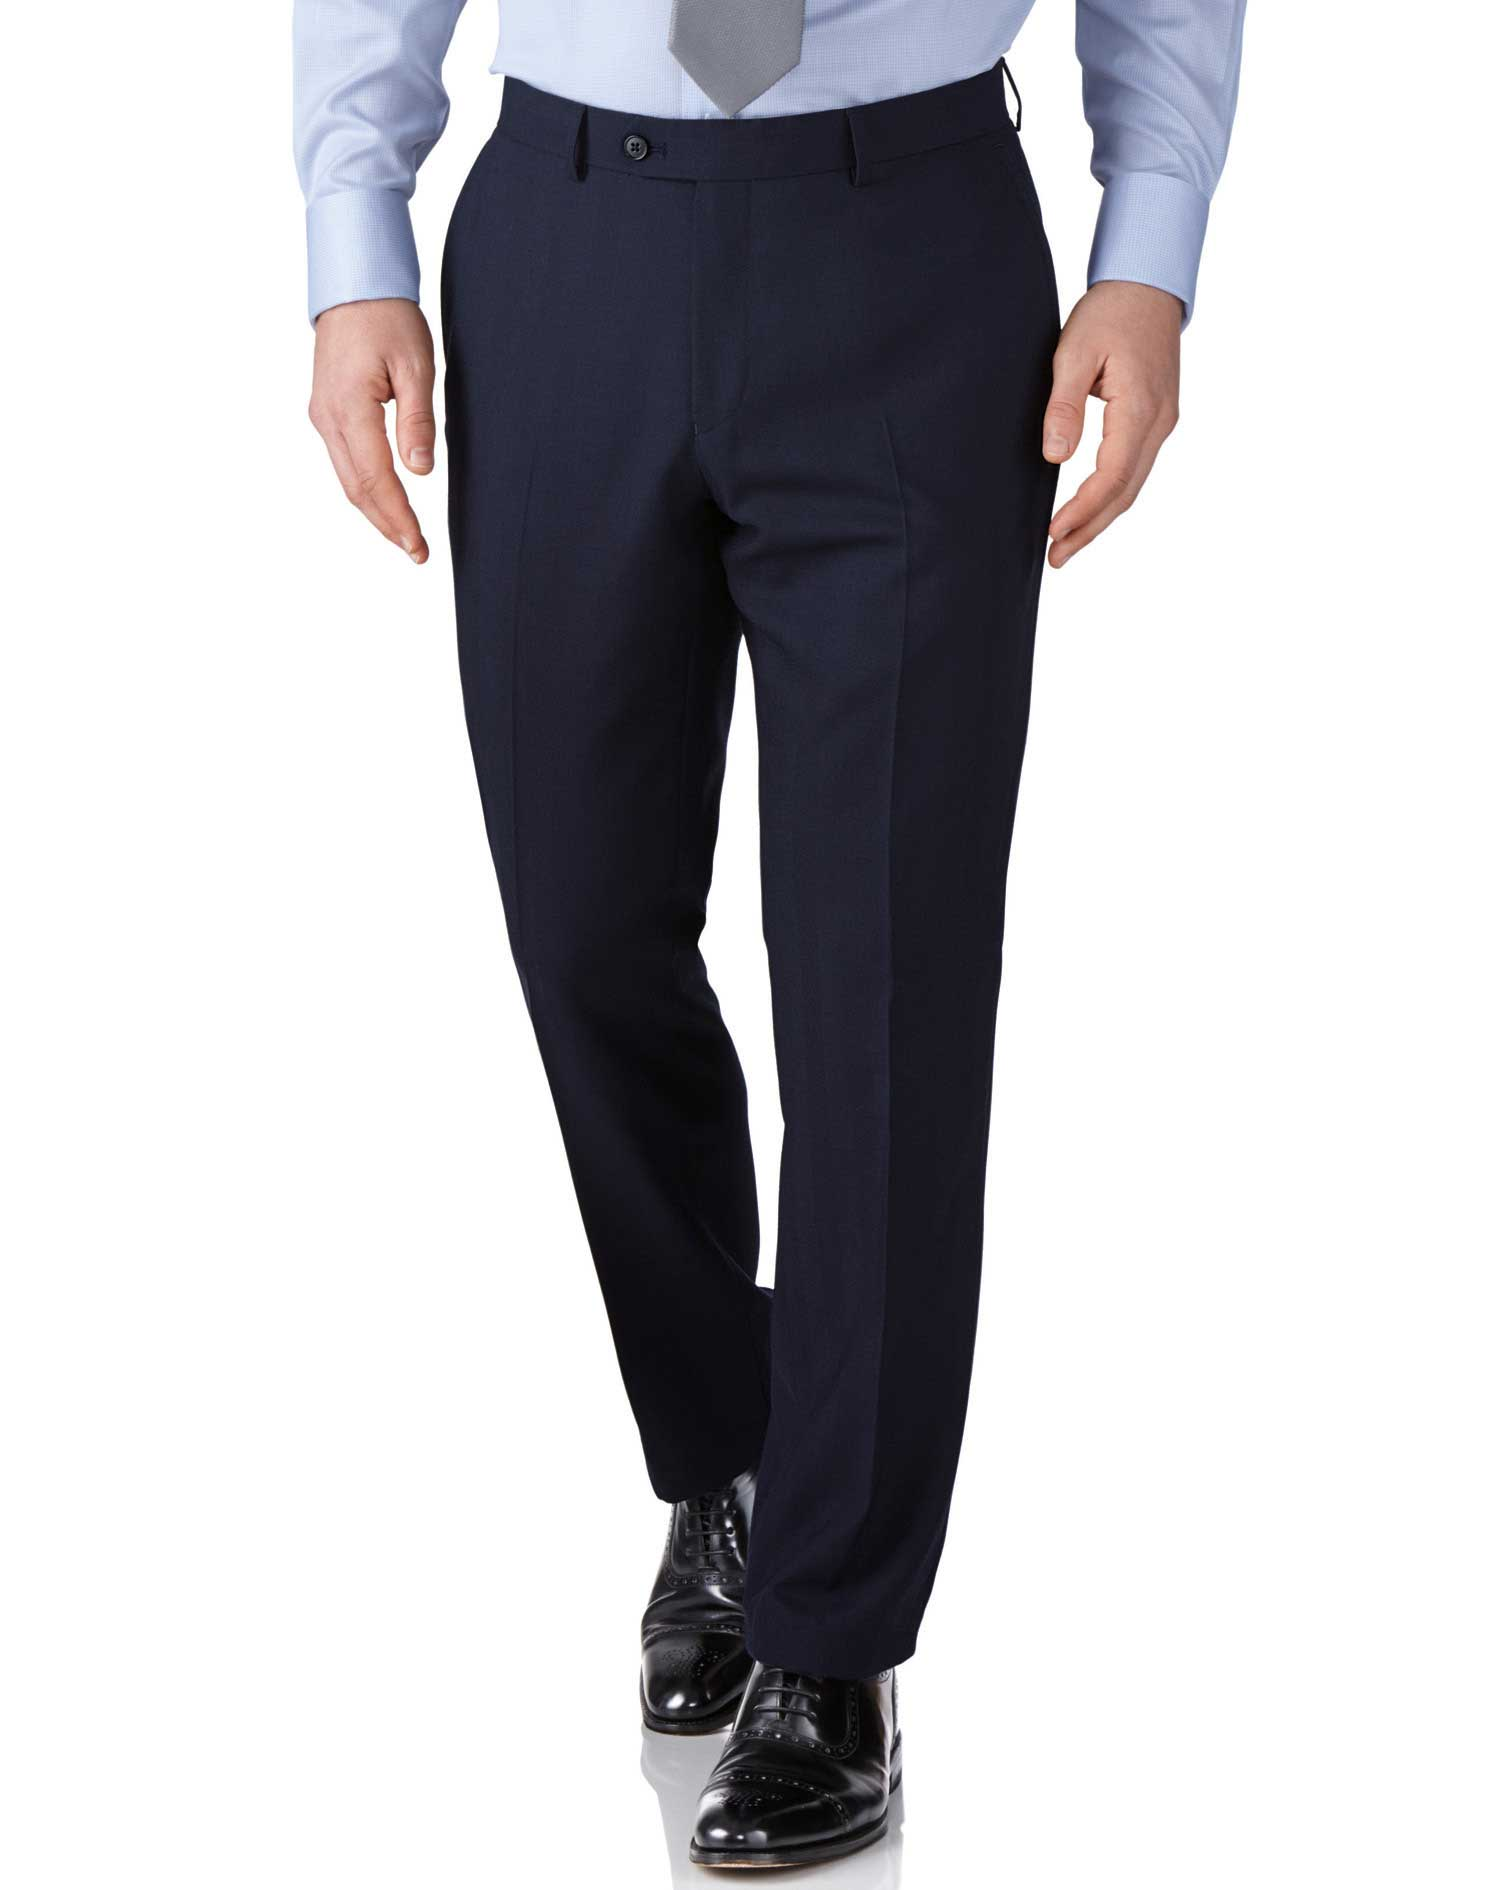 Navy Slim Fit Herringbone Business Suit Trousers Size W30 L38 by Charles Tyrwhitt